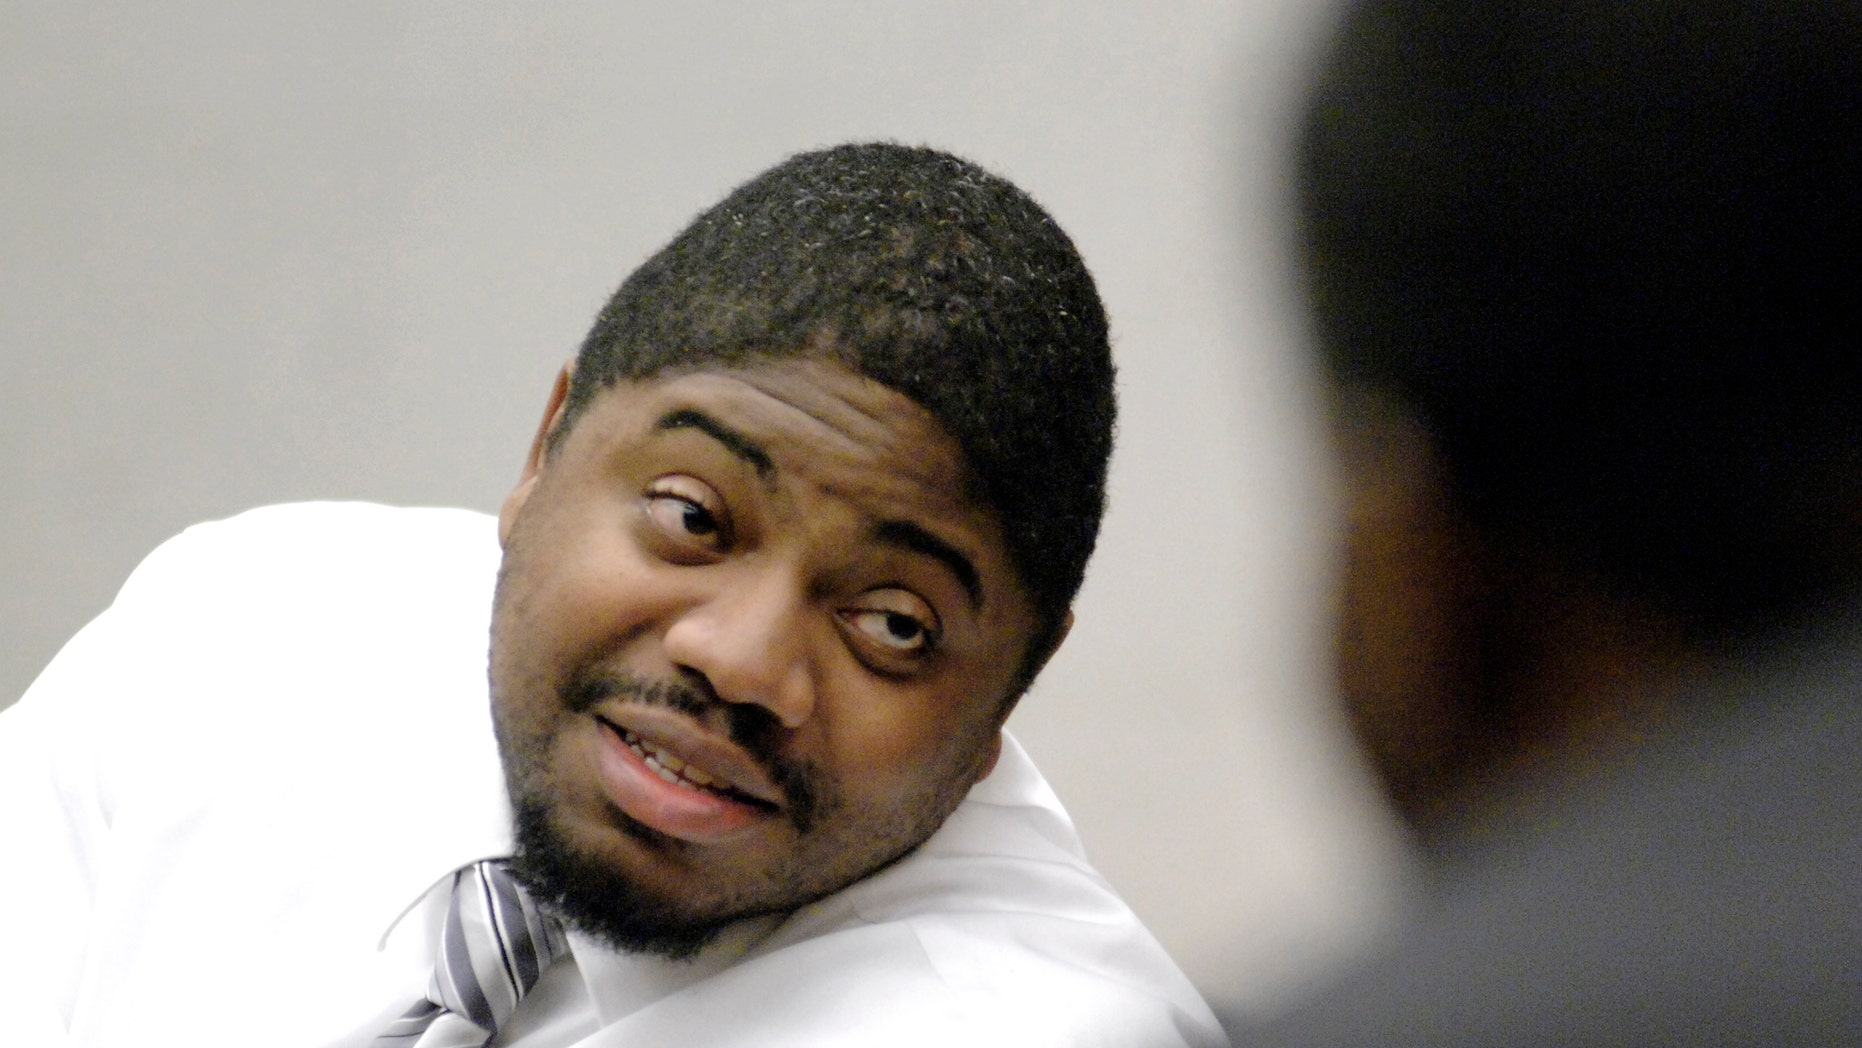 FILE - In an Oct. 28, 2008 file photo, defendant Michael Addison talks with a member of the gallery during a break in his capital murder trial in the death of Manchester Police Officer Michael Briggs, in Hillsborough County Superior Court in Manchester, N.H. Addison was sentenced to death in 2008 for Briggs' murder. On Wednesday, Nov. 6, 2013, New Hampshire's Supreme Court will rule on the constitutionality of the state's death penalty and whether the death sentence of Addison will stand. (AP Photo/Union Leader, Bob LaPree, Pool, File)